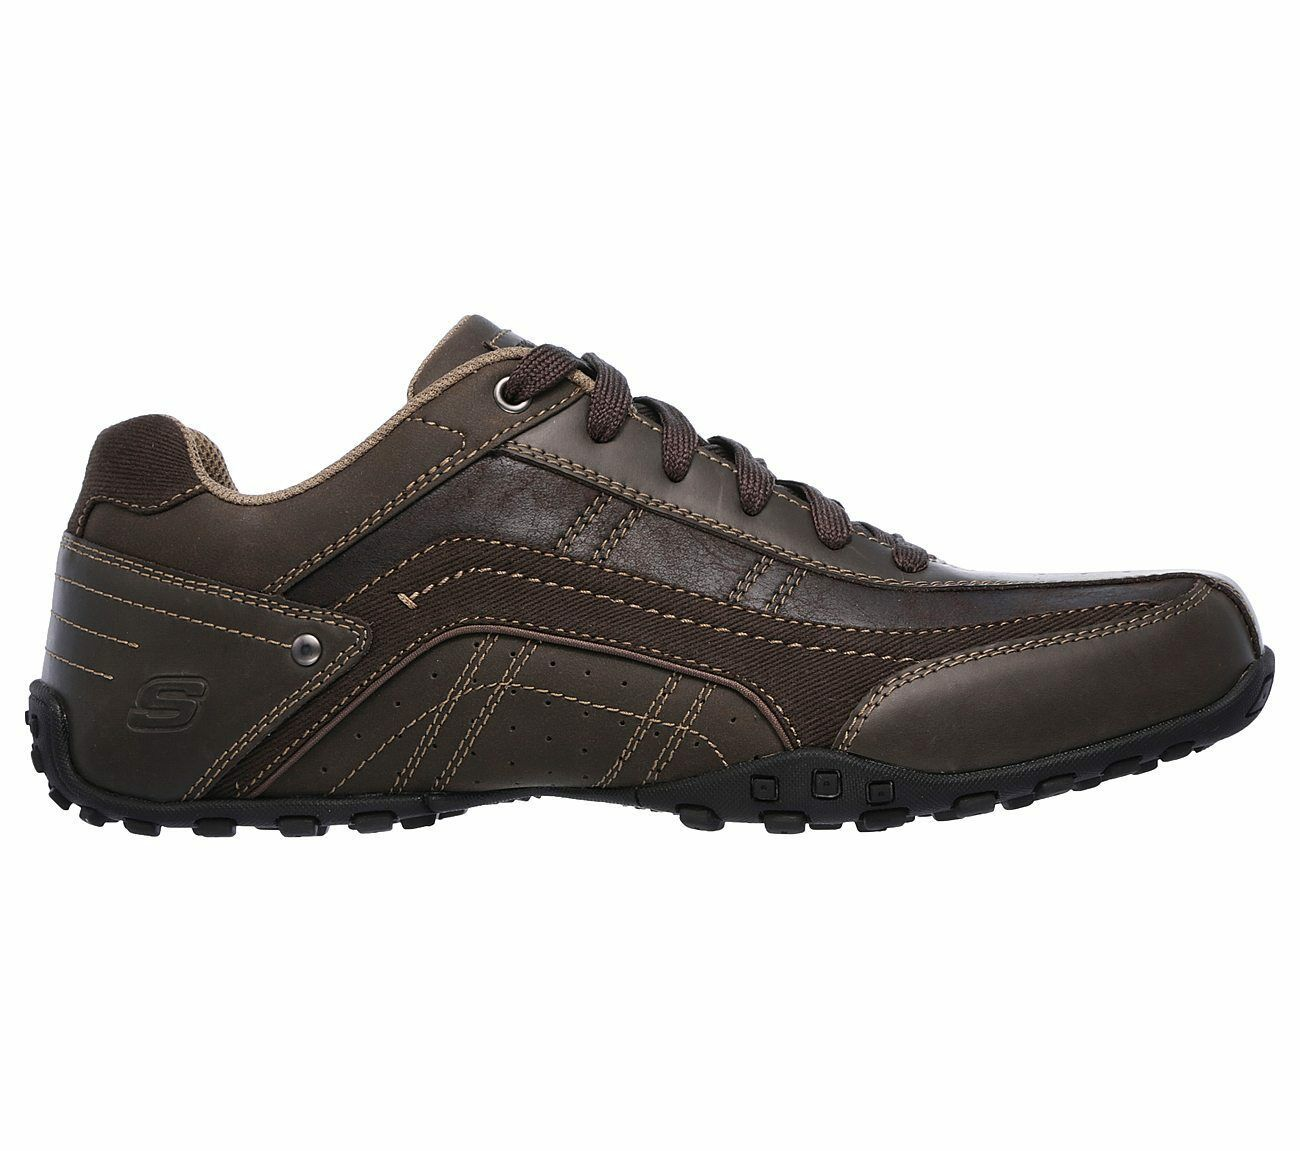 Men's Skechers Citywalk - Elendo Casual Shoes, 64932 /CHOC Sizes 8-14 Chocolate image 6